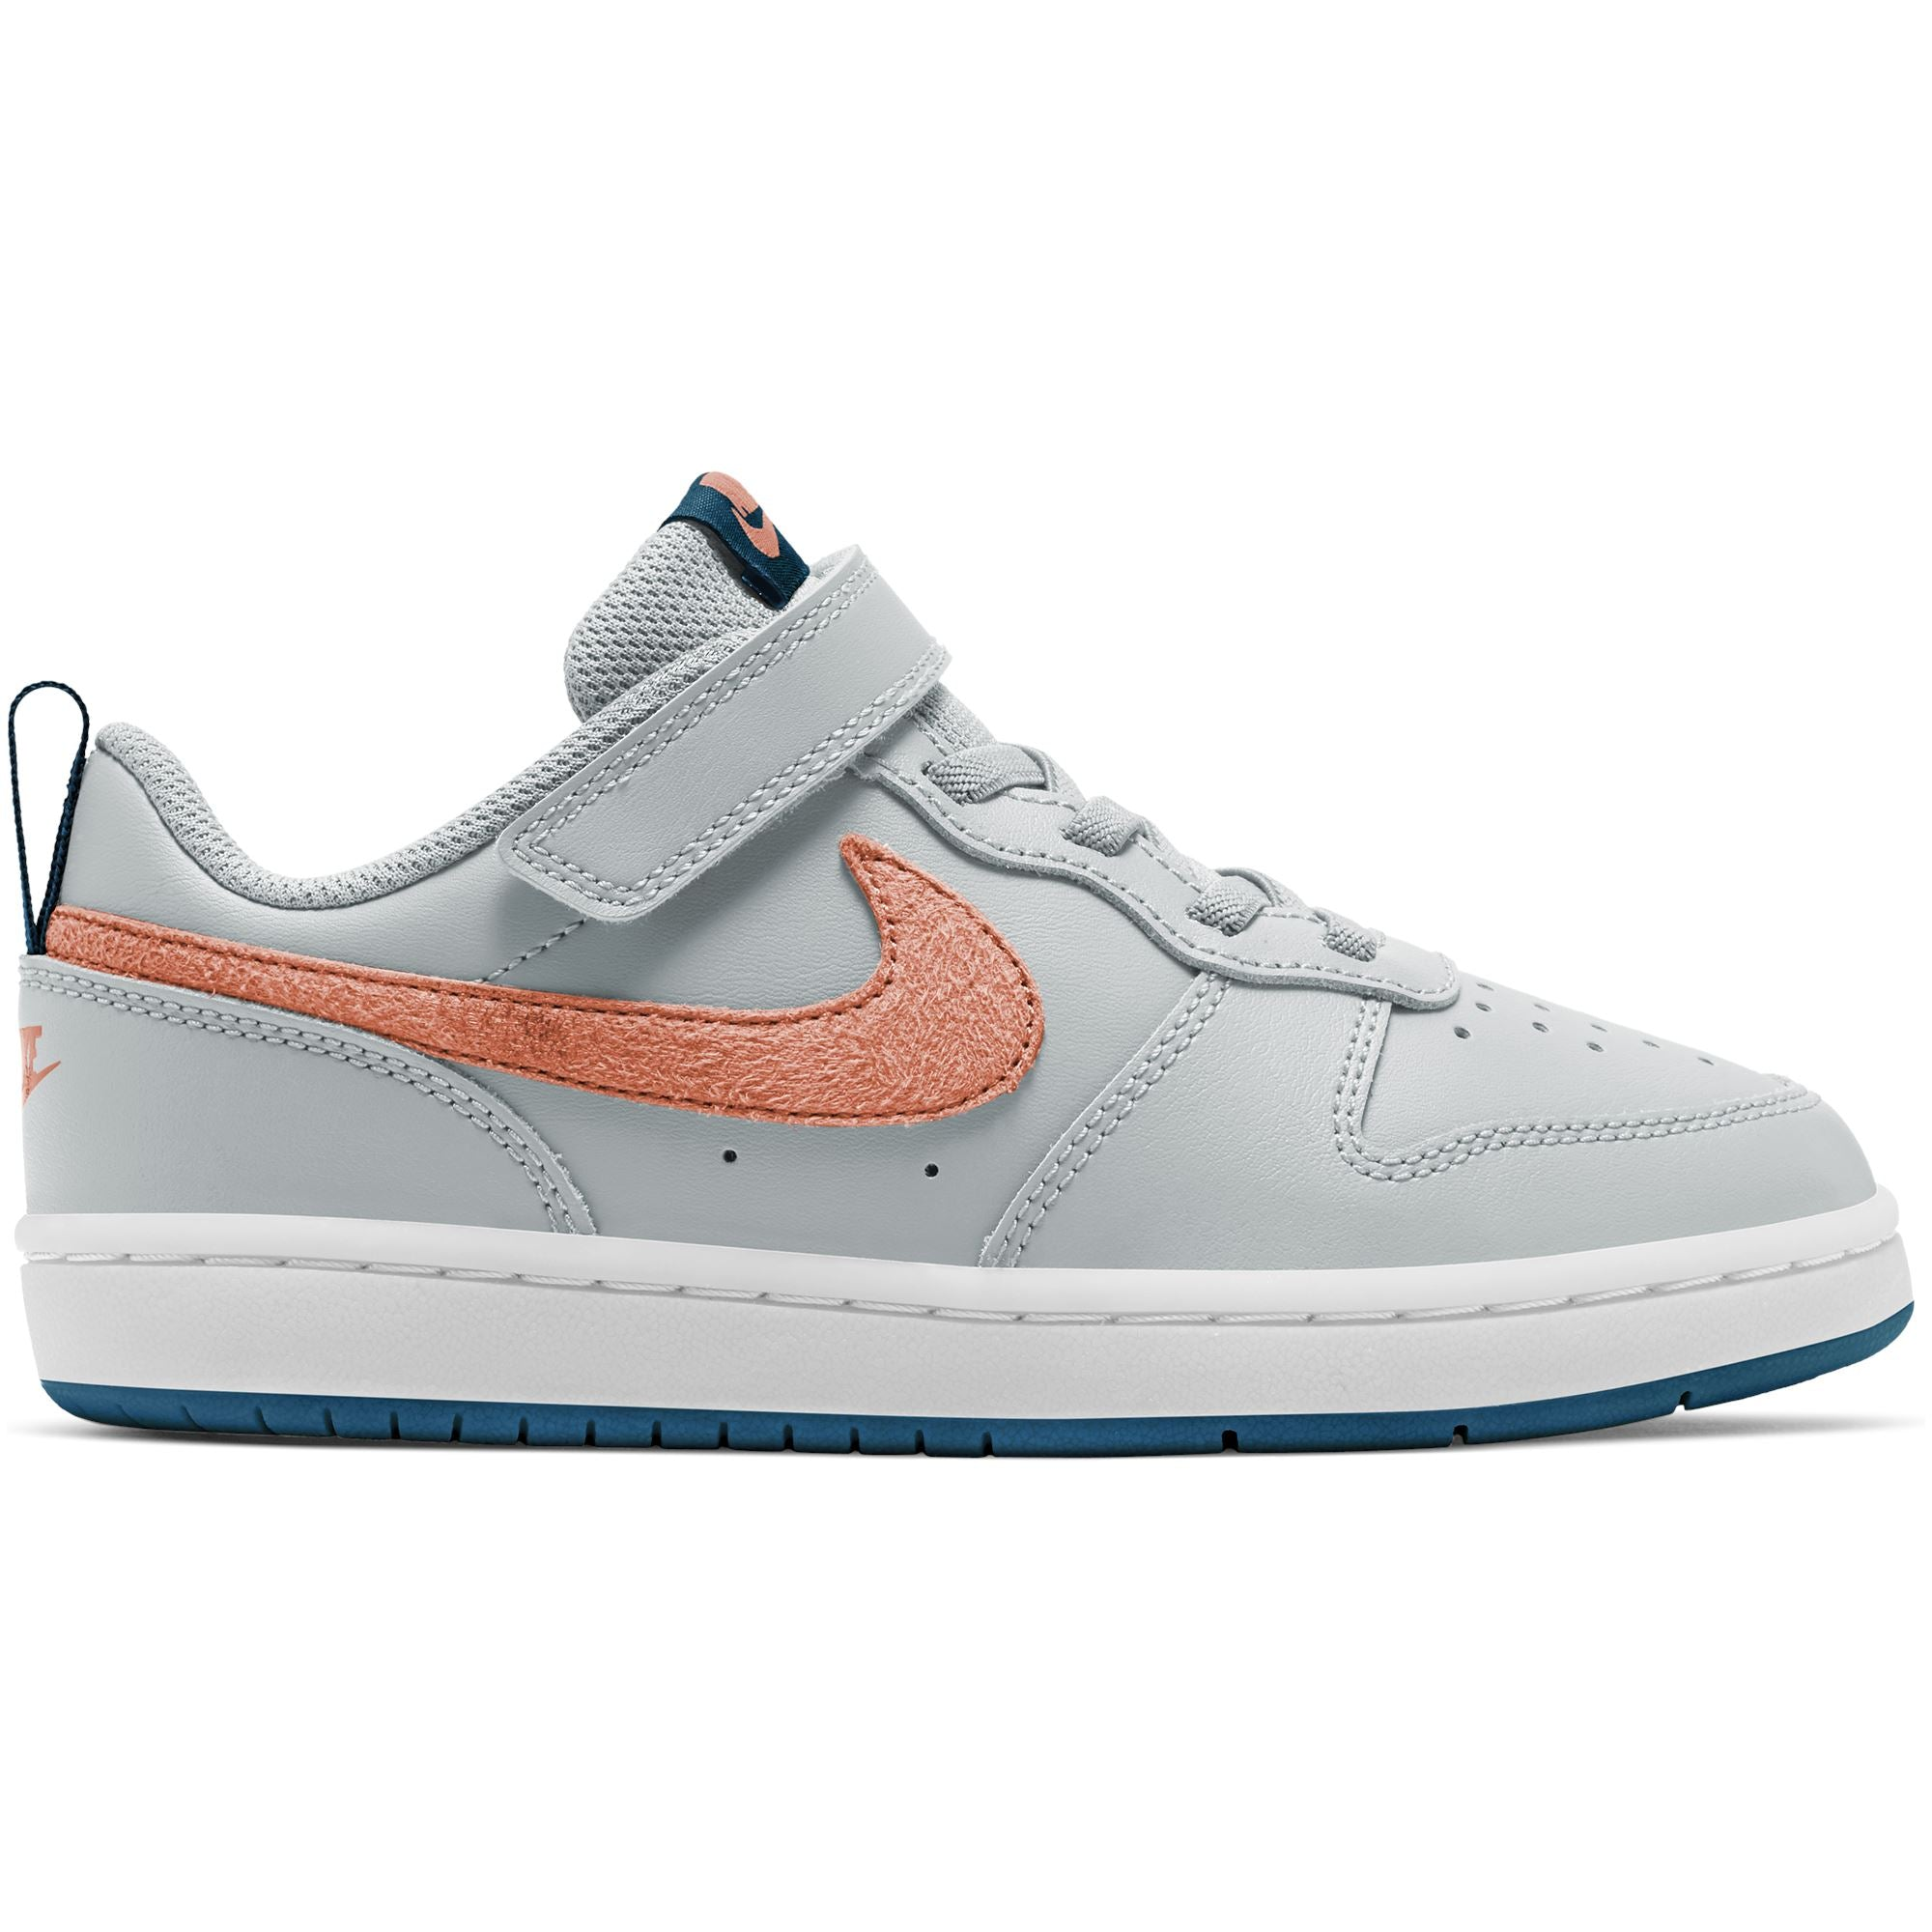 Nike Kids Court Borough Low 2 (Little Kids) - Pure Platinum/Atomic Pink/Valerian Blue SP-Footwear-Kids Nike